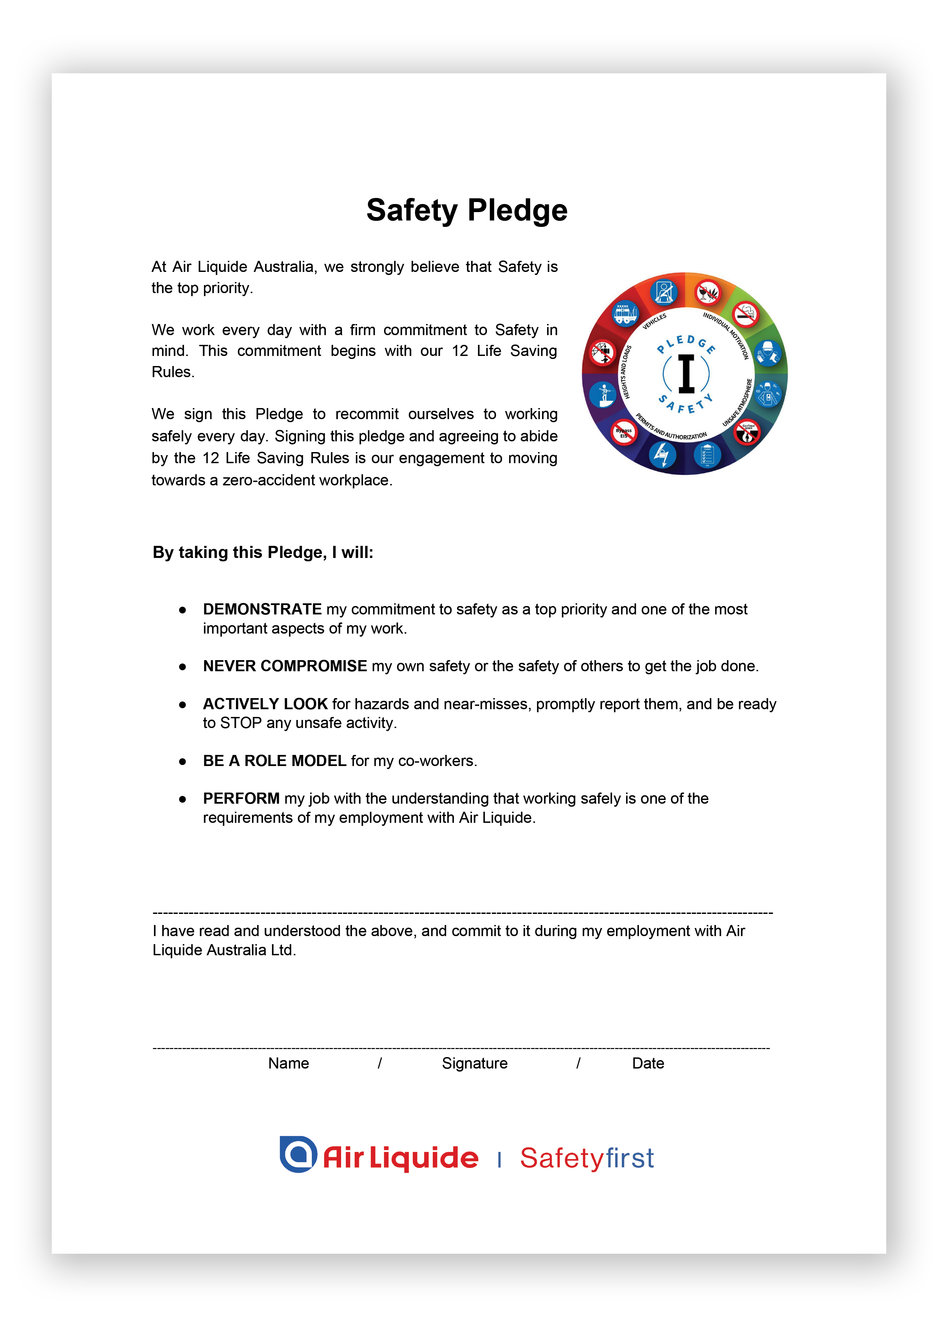 ALA Safety pledge